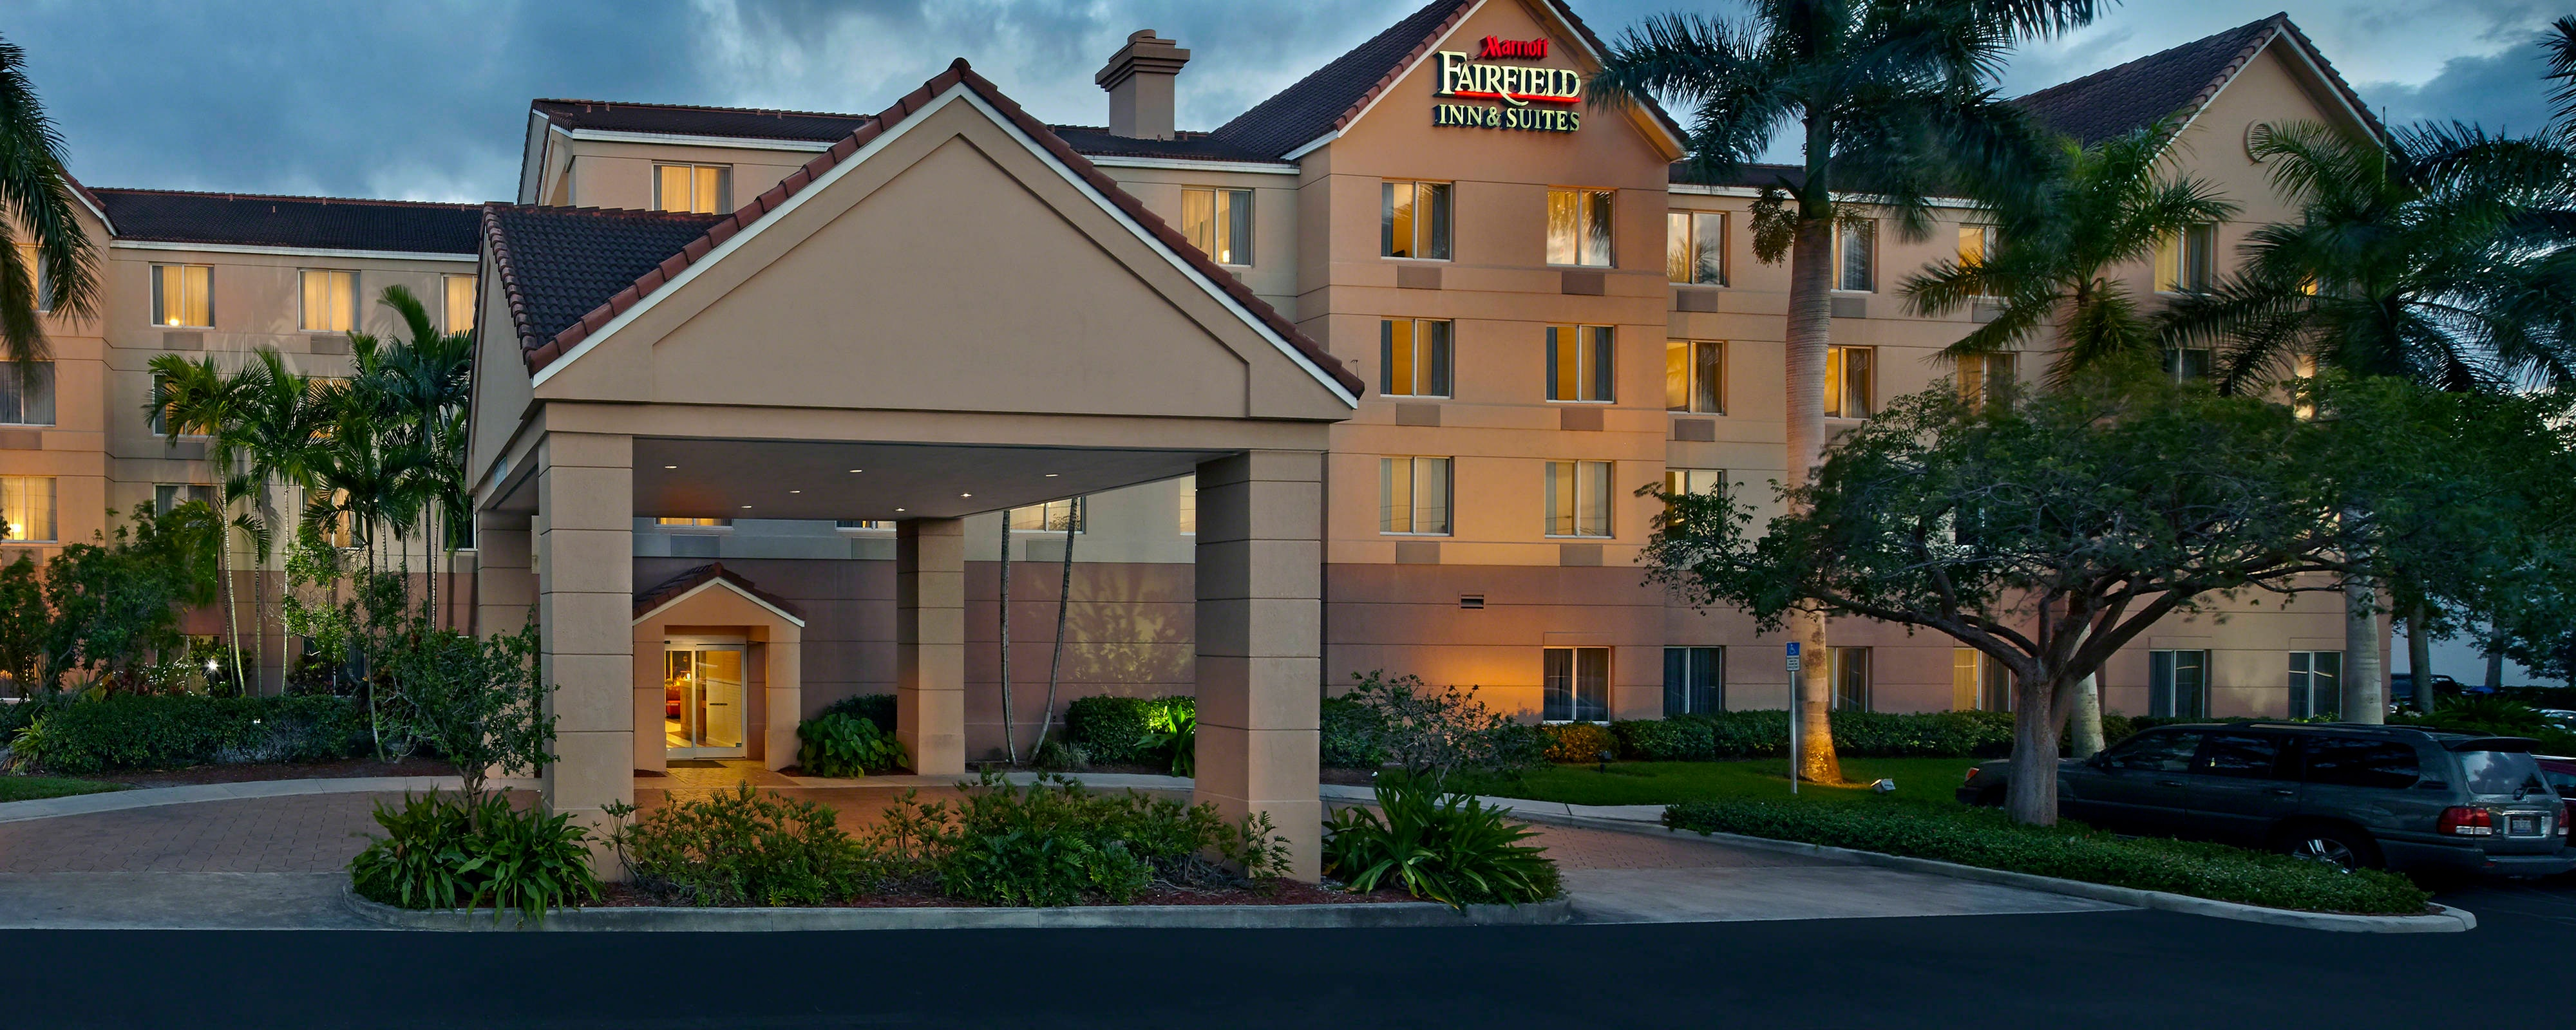 Fairfield Inn and Suites en Boca Ratón